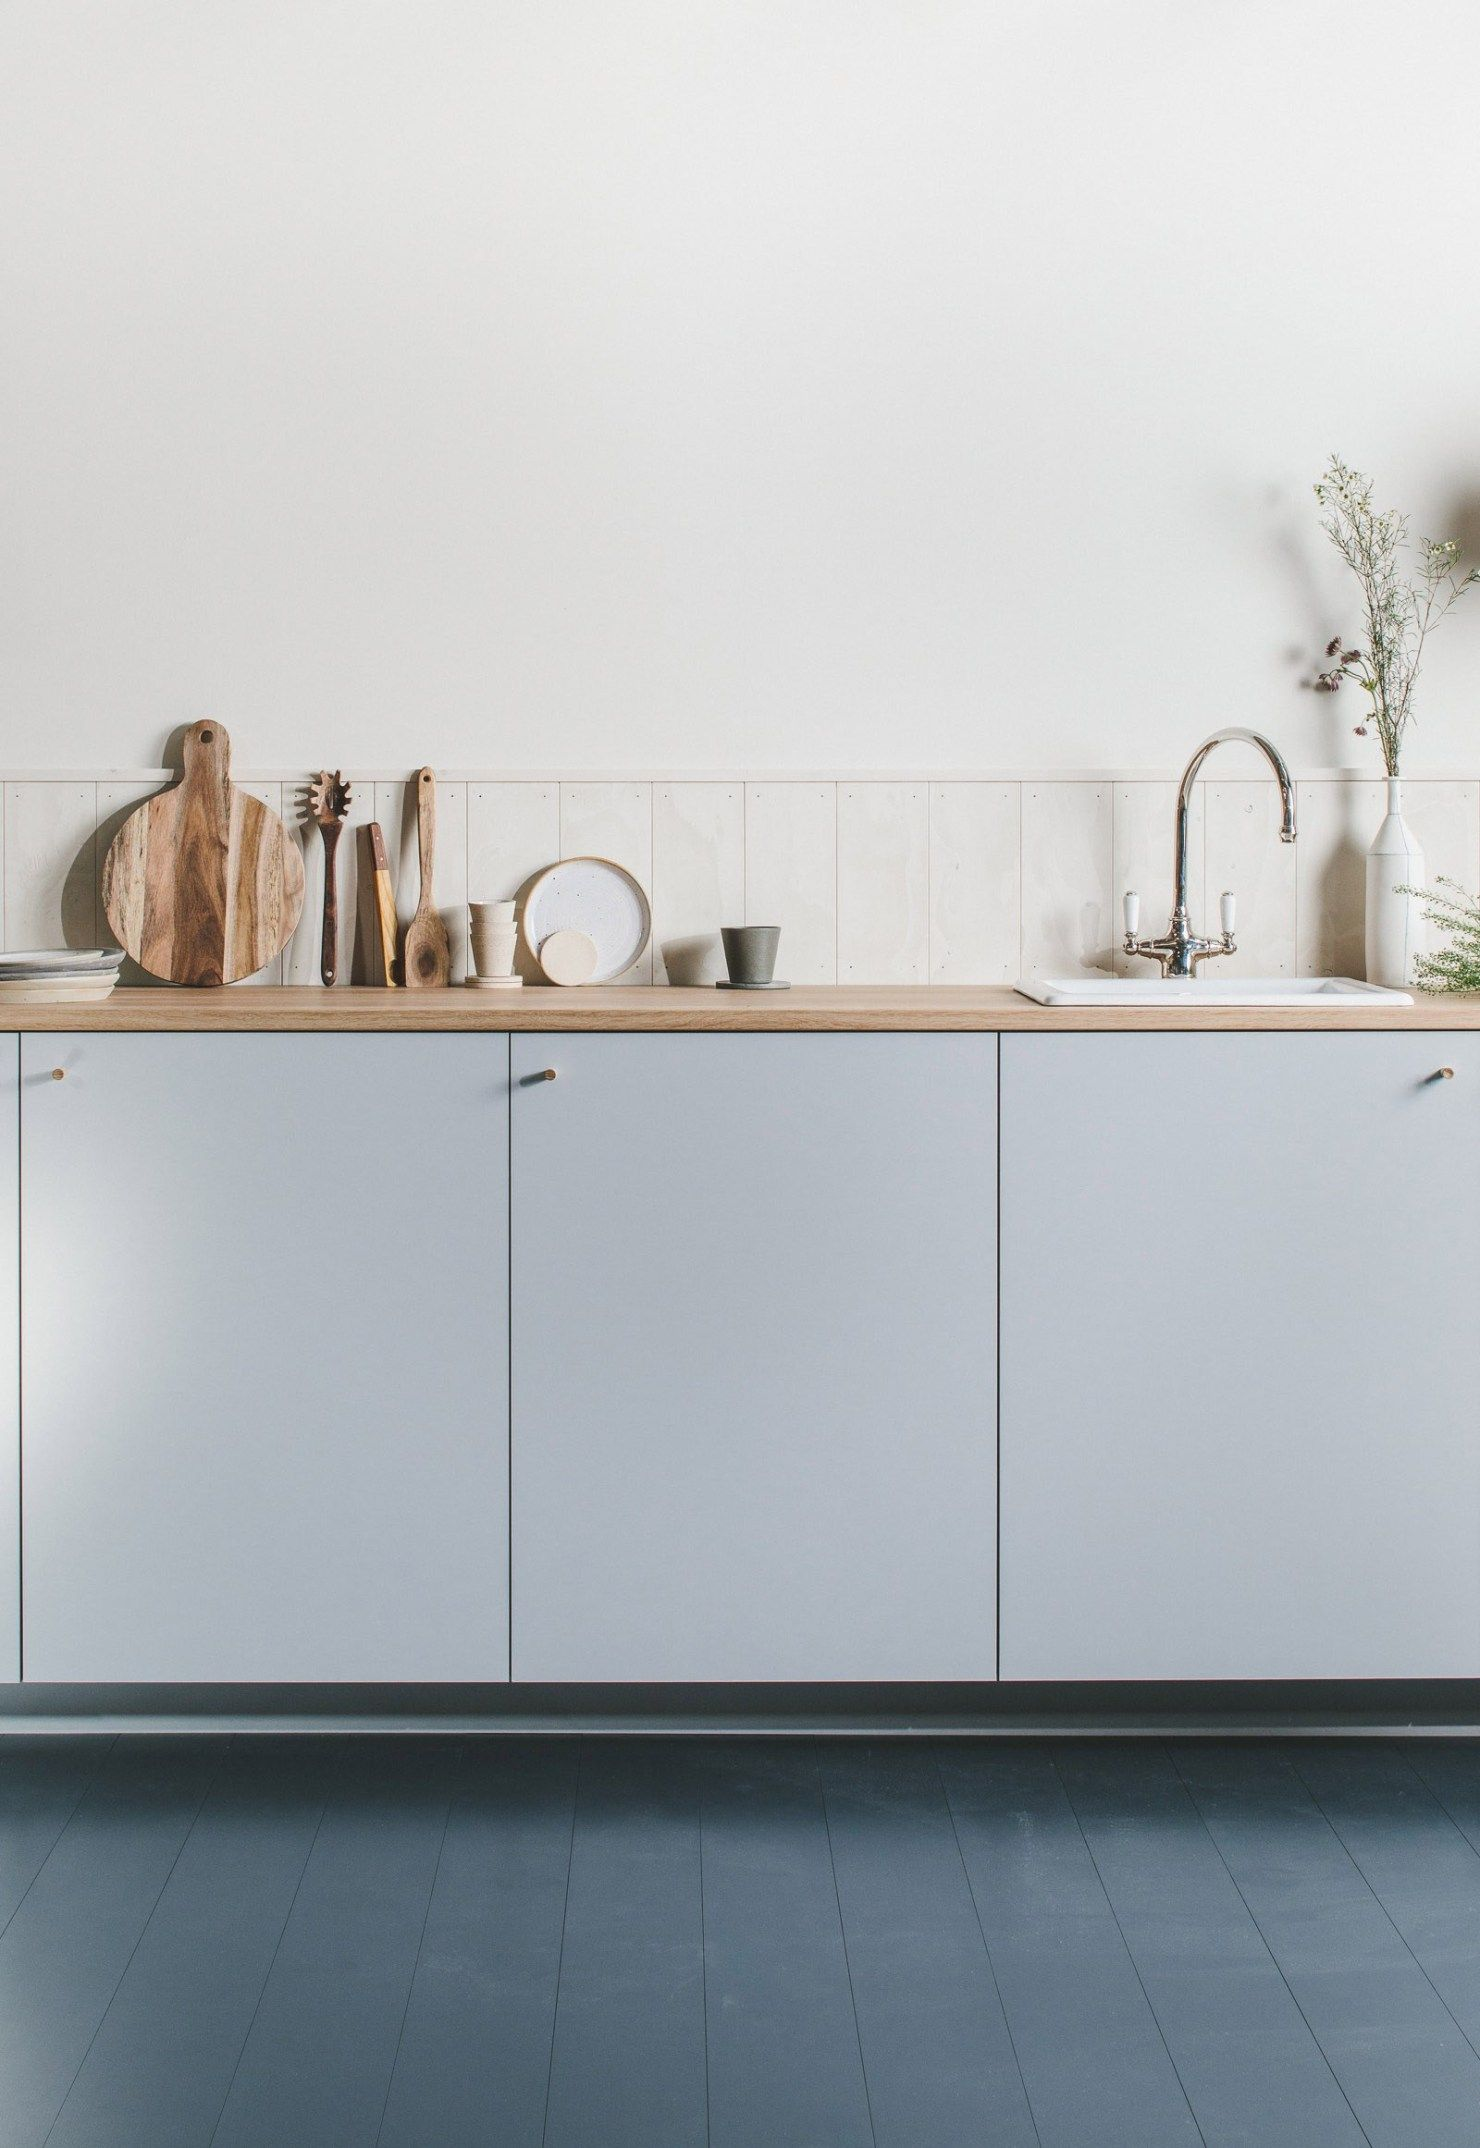 Six Brands To Help You Customise Ikea Kitchen Cabinets These Four Walls In 2020 Ikea Kitchen Cabinets Ikea Kitchen Design Minimalist Kitchen Design